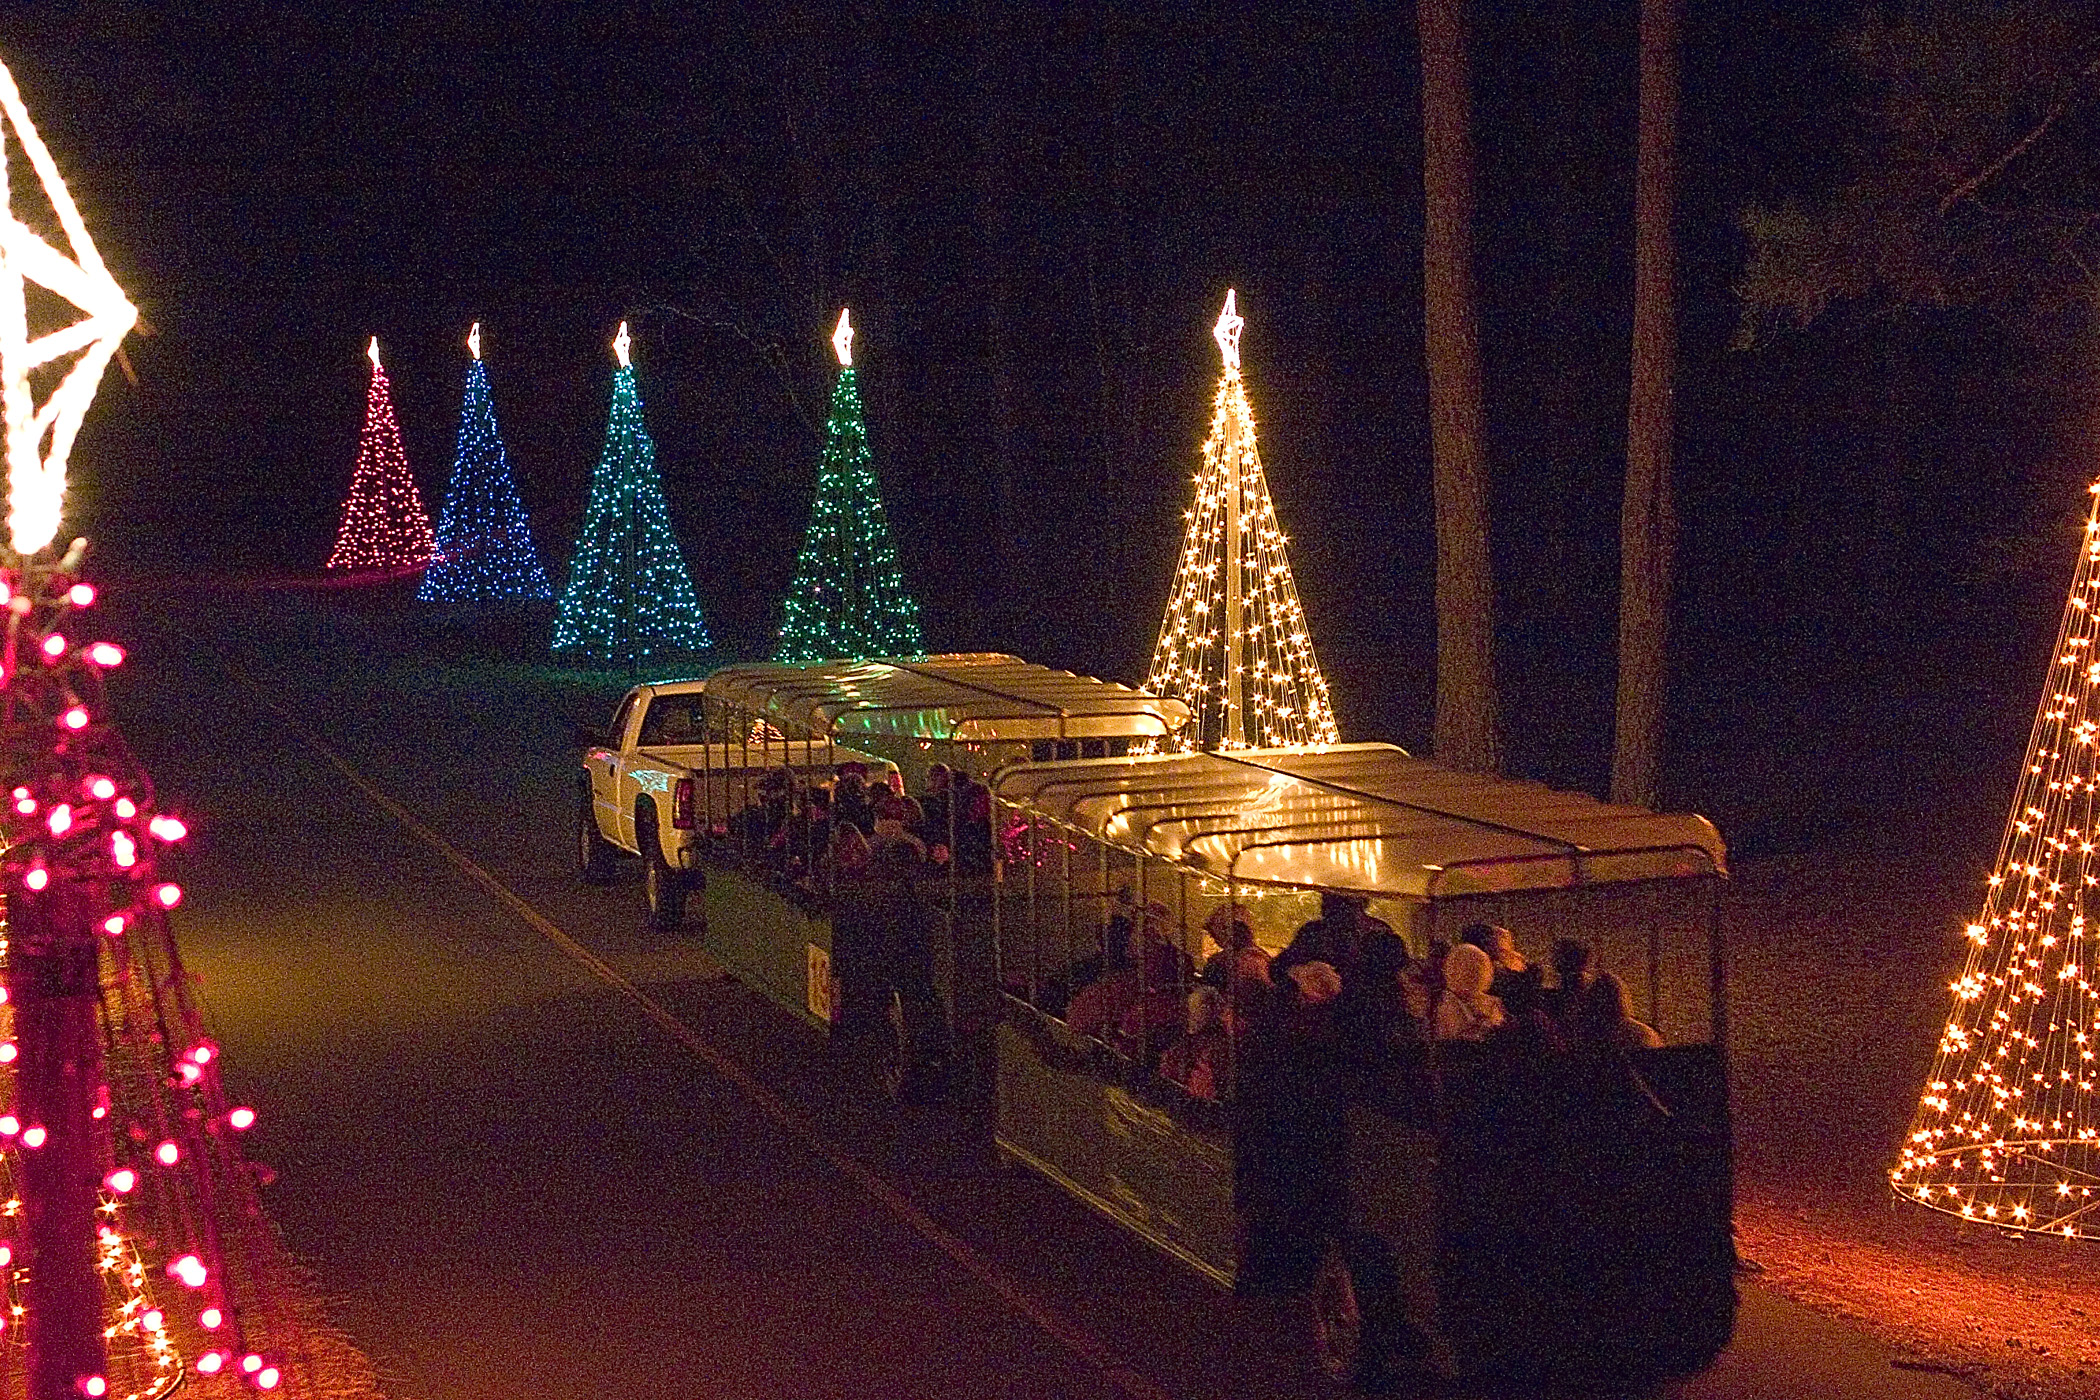 Callaway Gardens Christmas Lights.Brightening Traditions Making This Holiday Season Magical